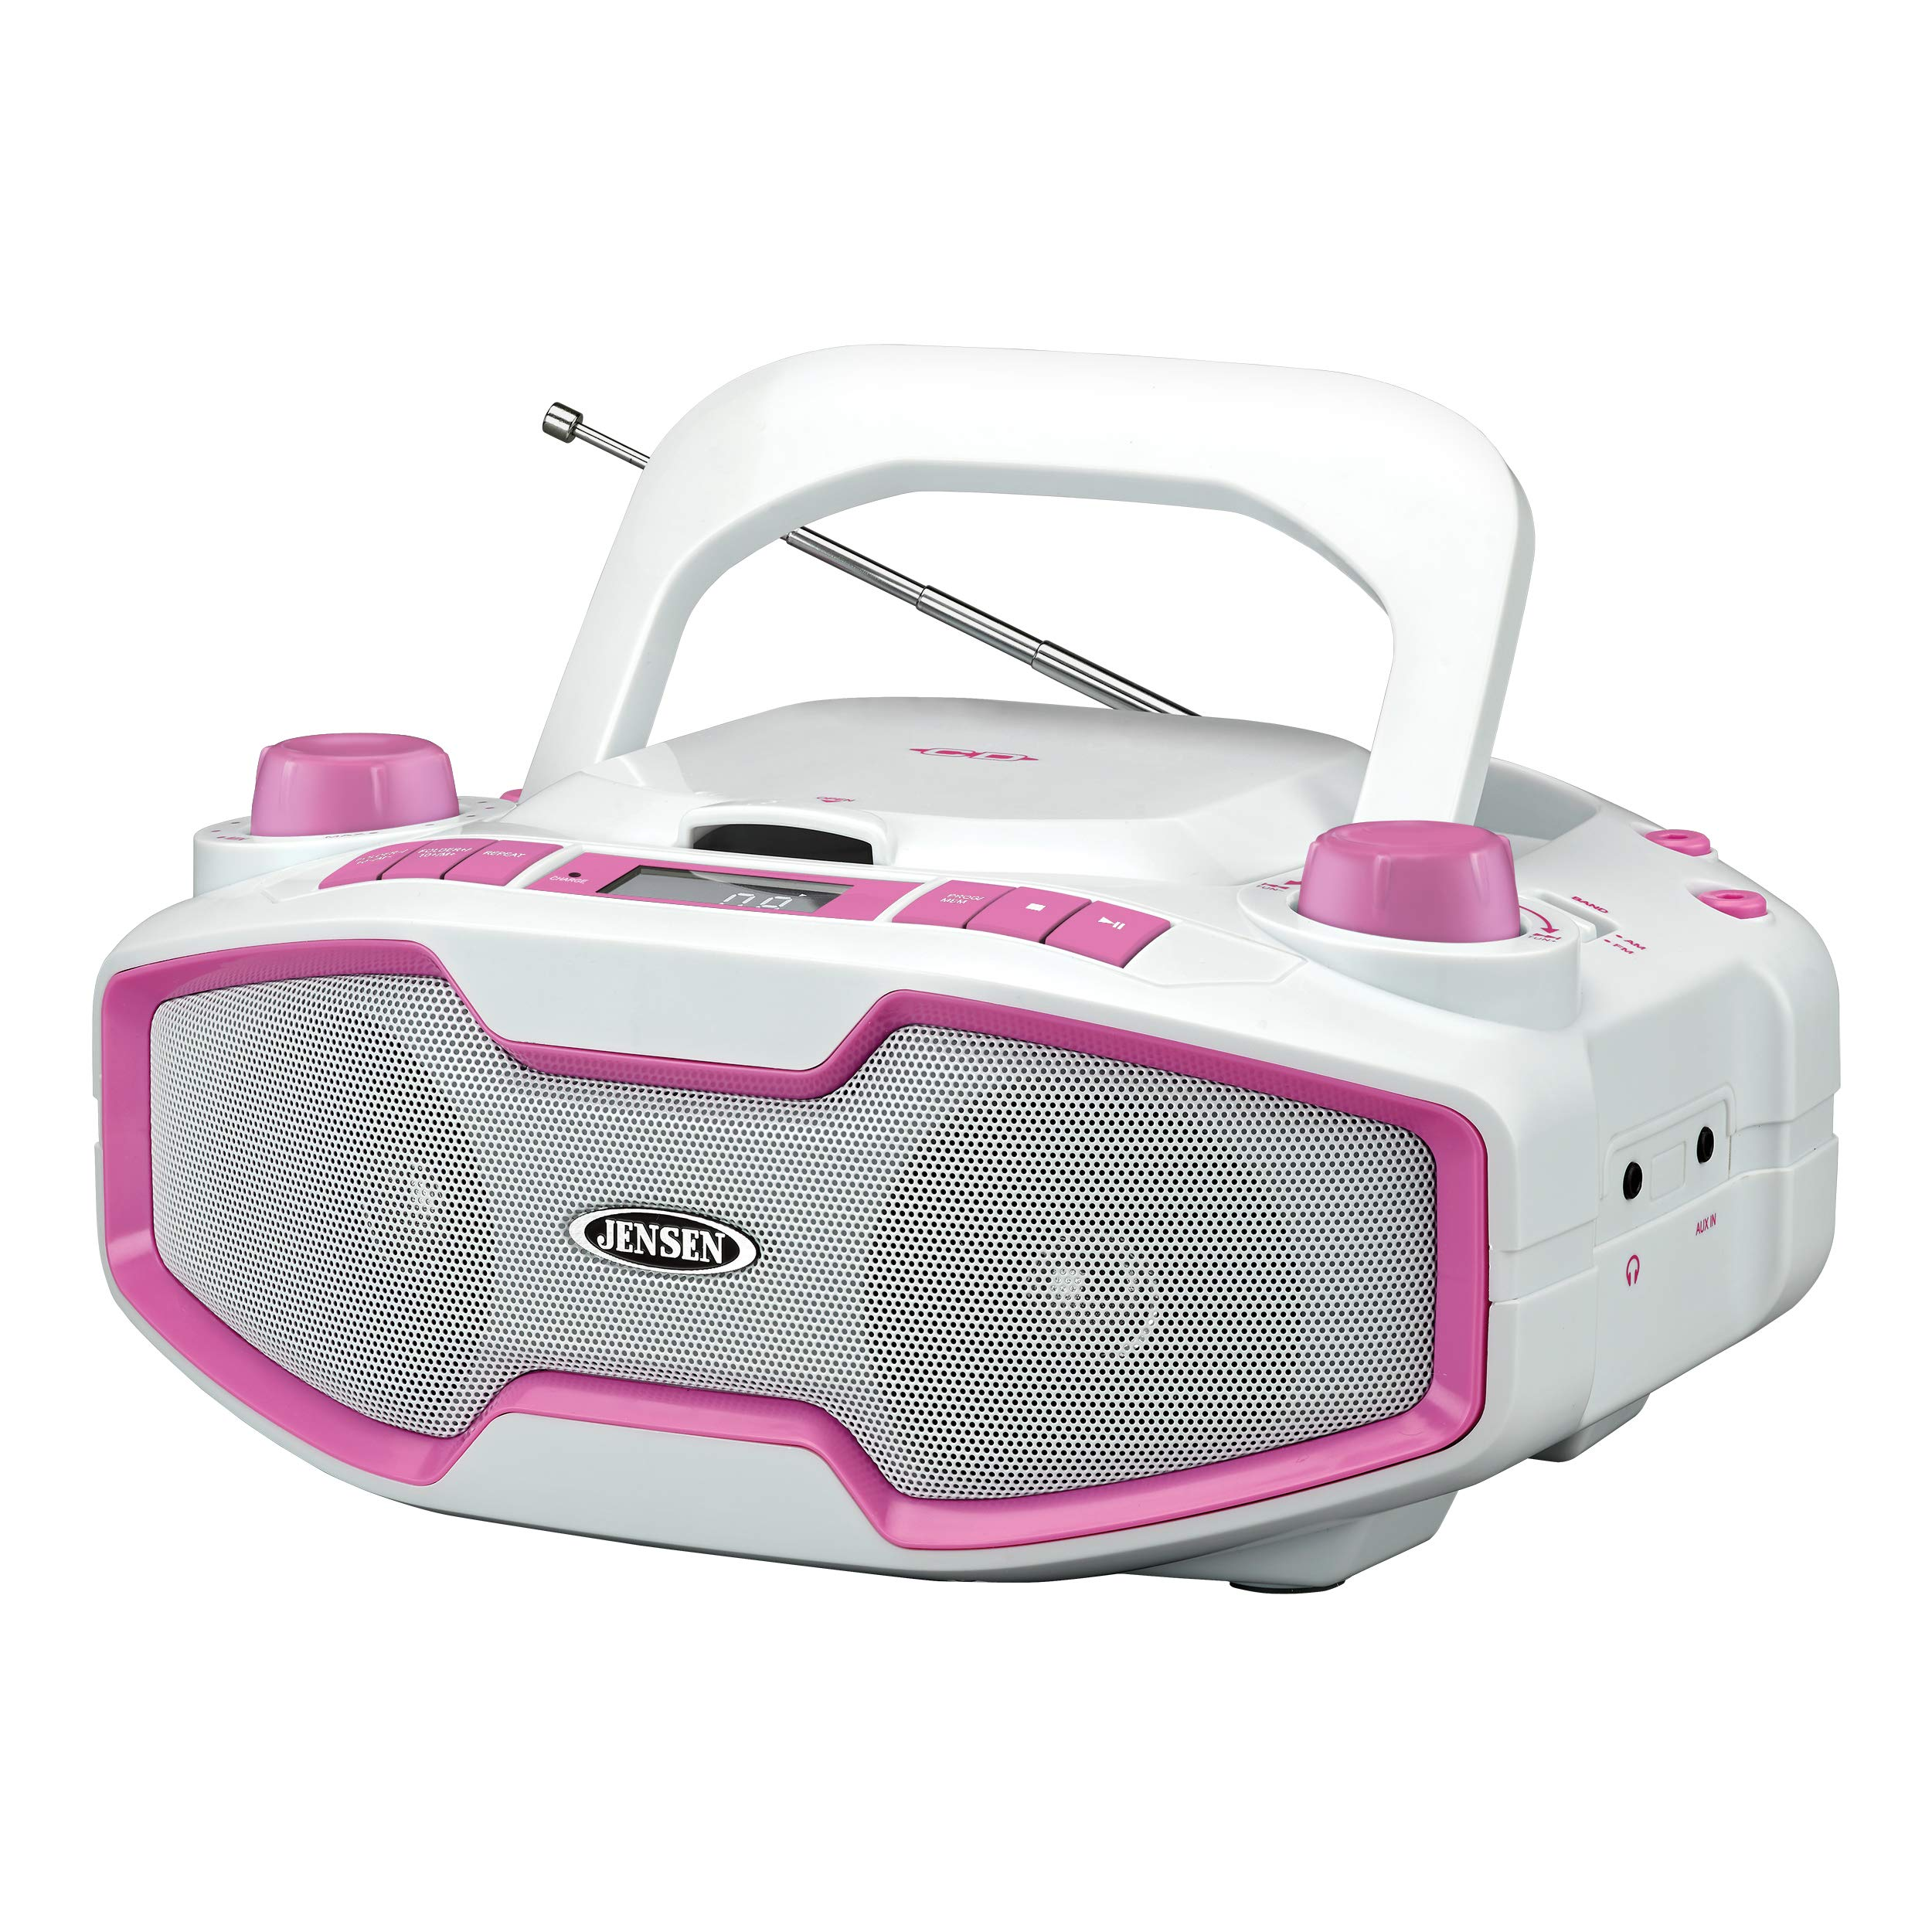 Jensen CD-575 Pink Portable Sport Stereo Boombox CD/MP3 Player with Digital AM/FM Radio LCD Display with Built-in Rechargeable Battery & Aux-in & Headphone Jack (White/Pink) (Limited Edition)